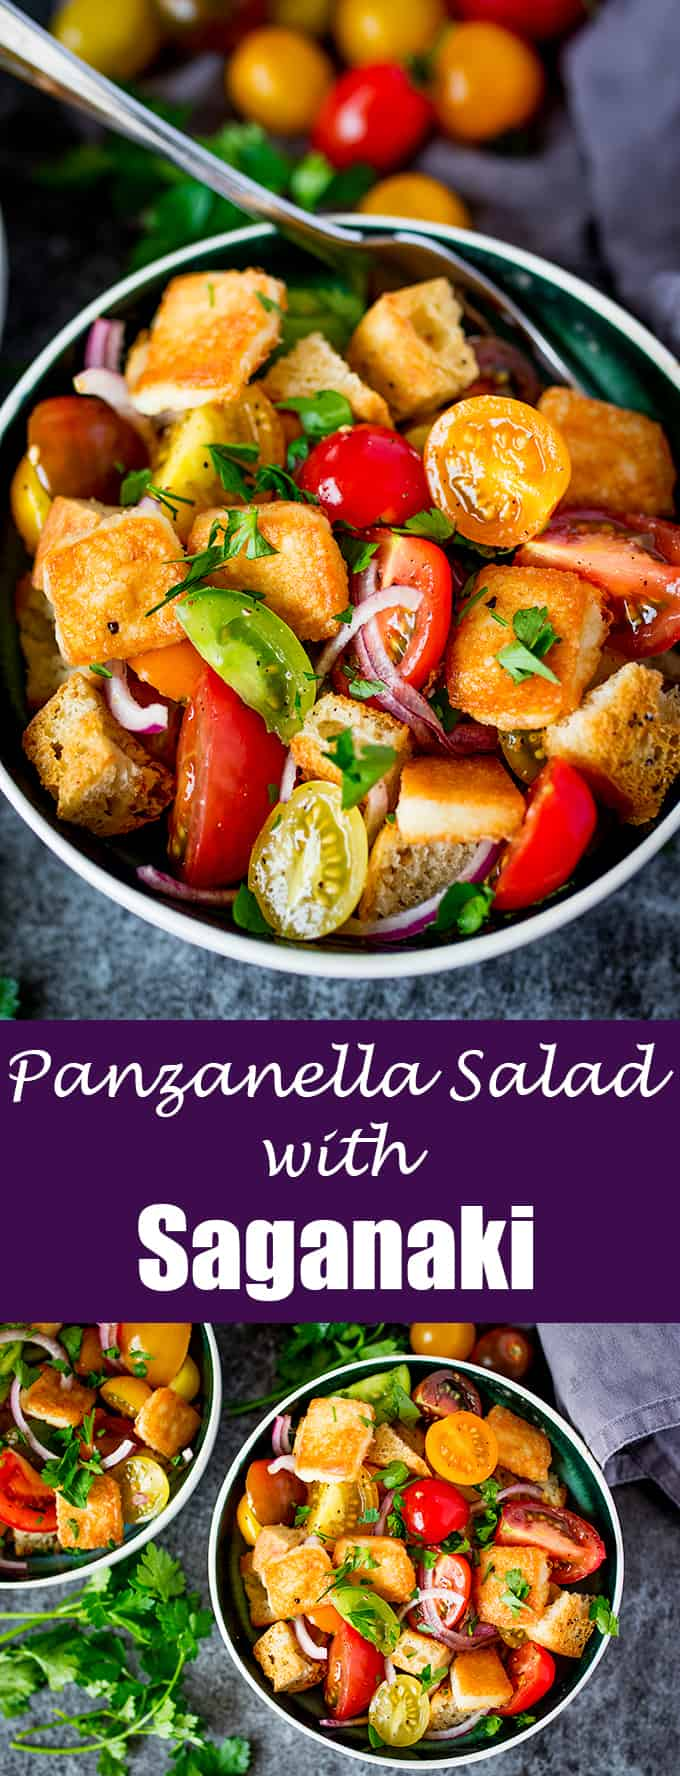 Panzanella Salad with Saganaki - Italy meets Greece in this juicy Tuscan tomato salad with crispy fried Greek cheese.